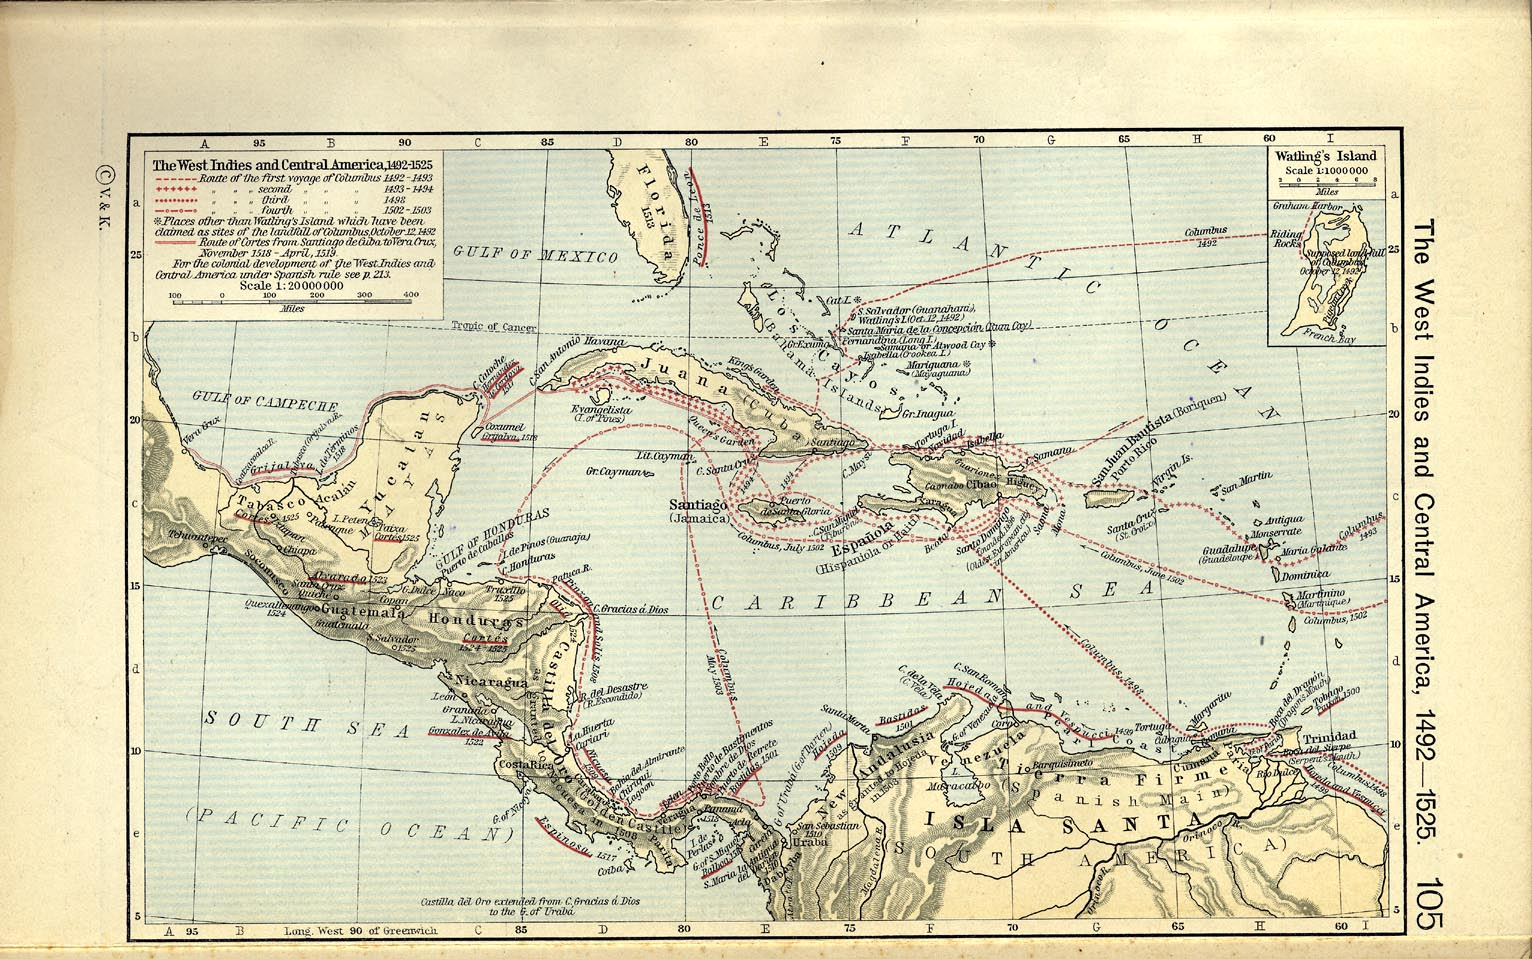 Historical Atlas By William R Shepherd PerryCastañeda Map - West indies central america 1763